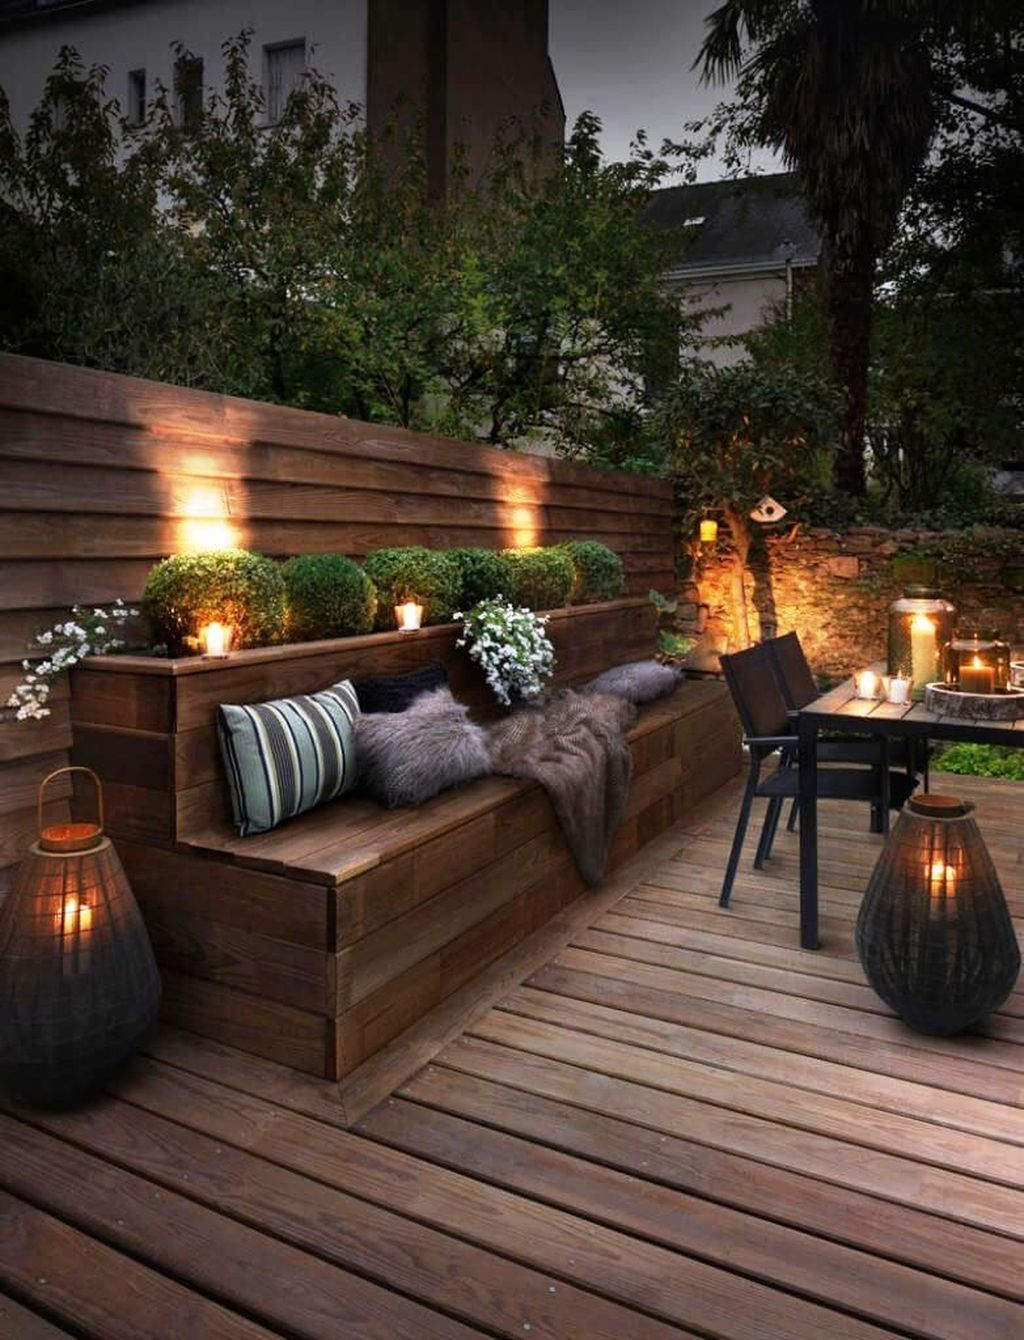 Cool 33 Stylish Outdoor Lighting Designs Ideas For Backyard More At Https Homyfeed Com 2019 03 30 3 Terrace Garden Design Outdoor Deck Lighting Patio Design